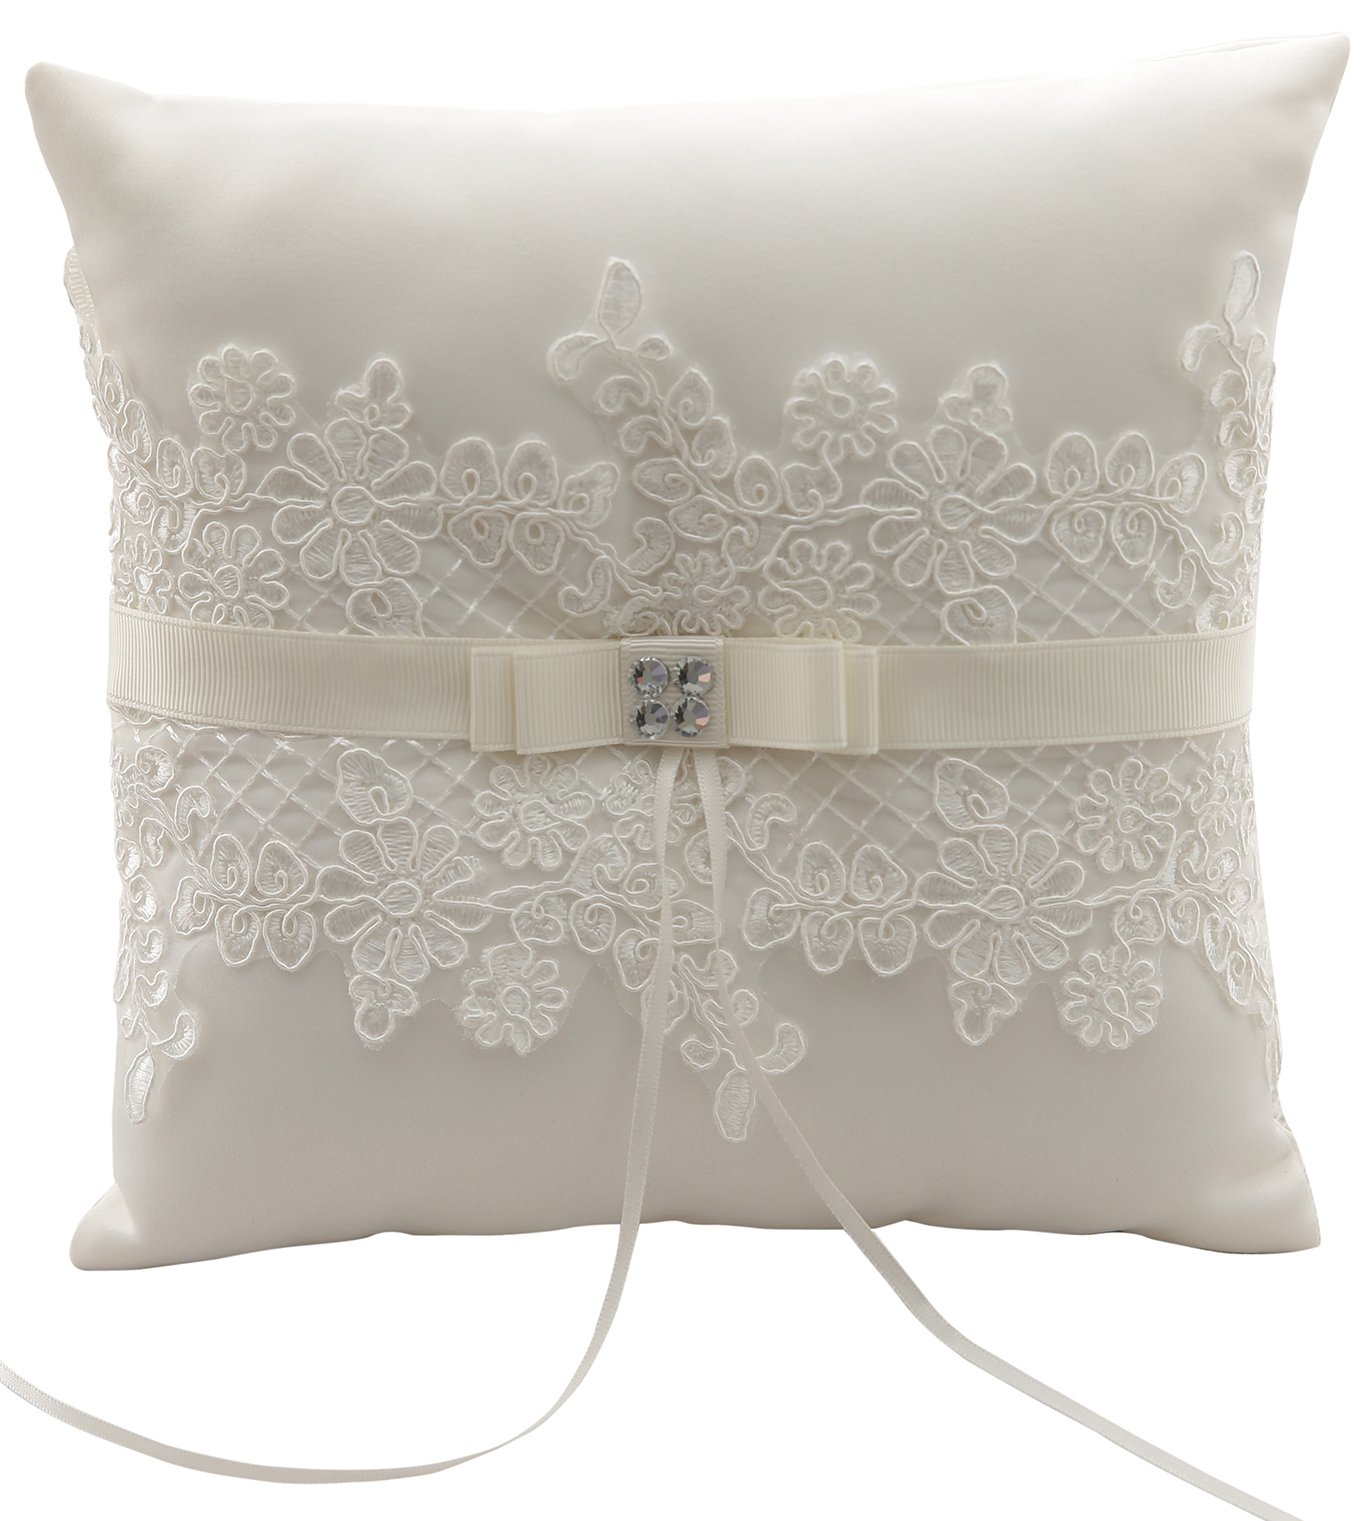 MeryaDress Ivory Satin and Lace Wedding Ring Bearer Pillow Cushion Embroider Flower Lace with Bow, 8 Inch (21cmx 21cm) Ring Bearer for Beach Wedding, Wedding ceremony-E